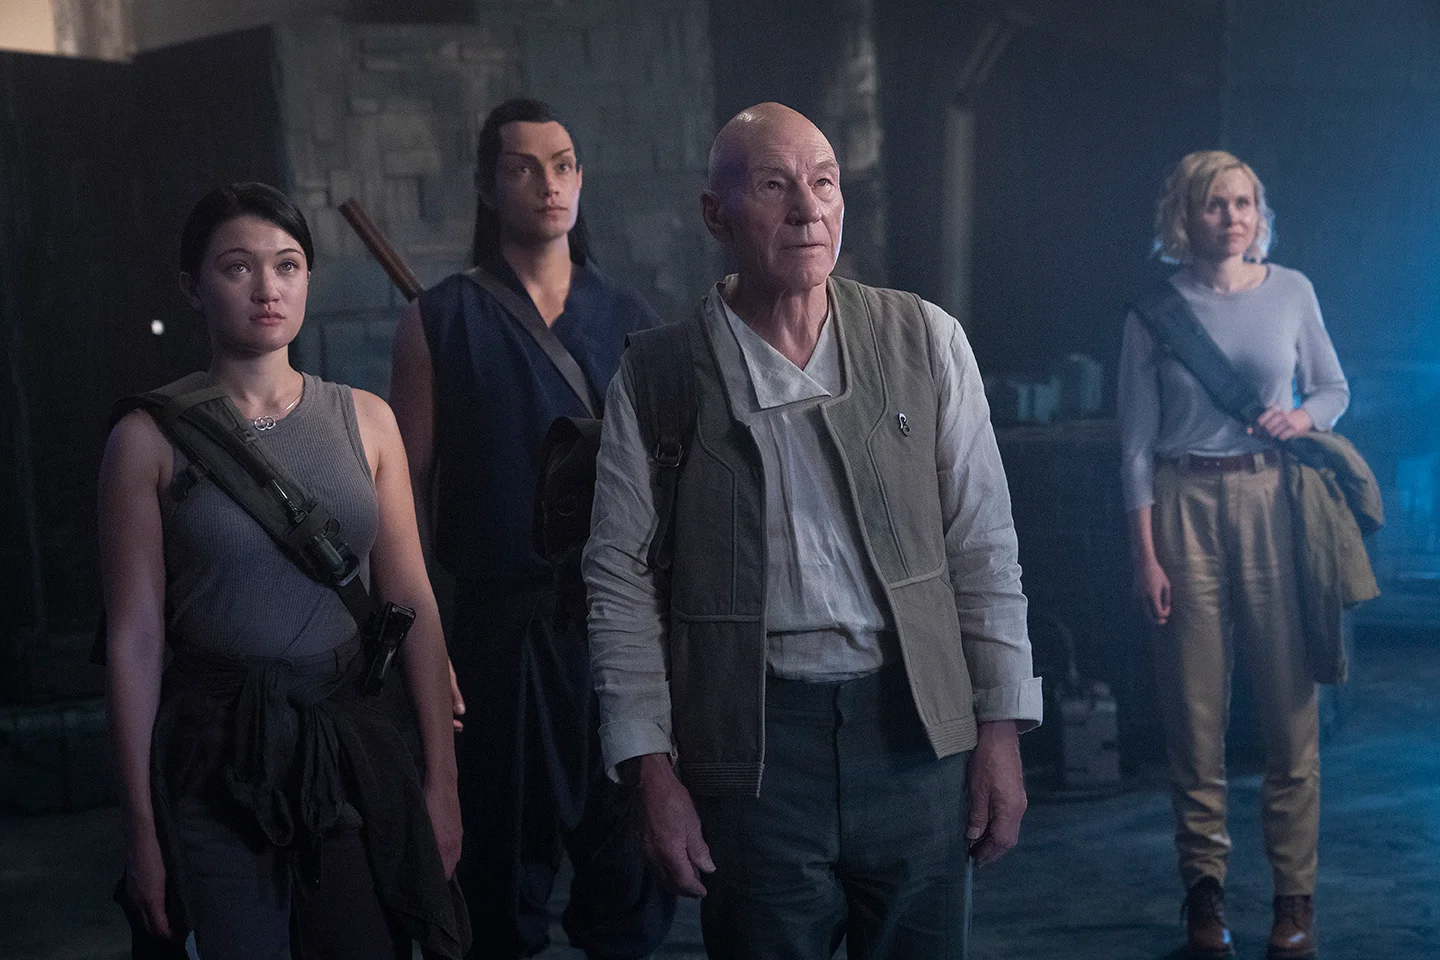 Star Trek: Picard episode 9 review et in arcadia ego part 1